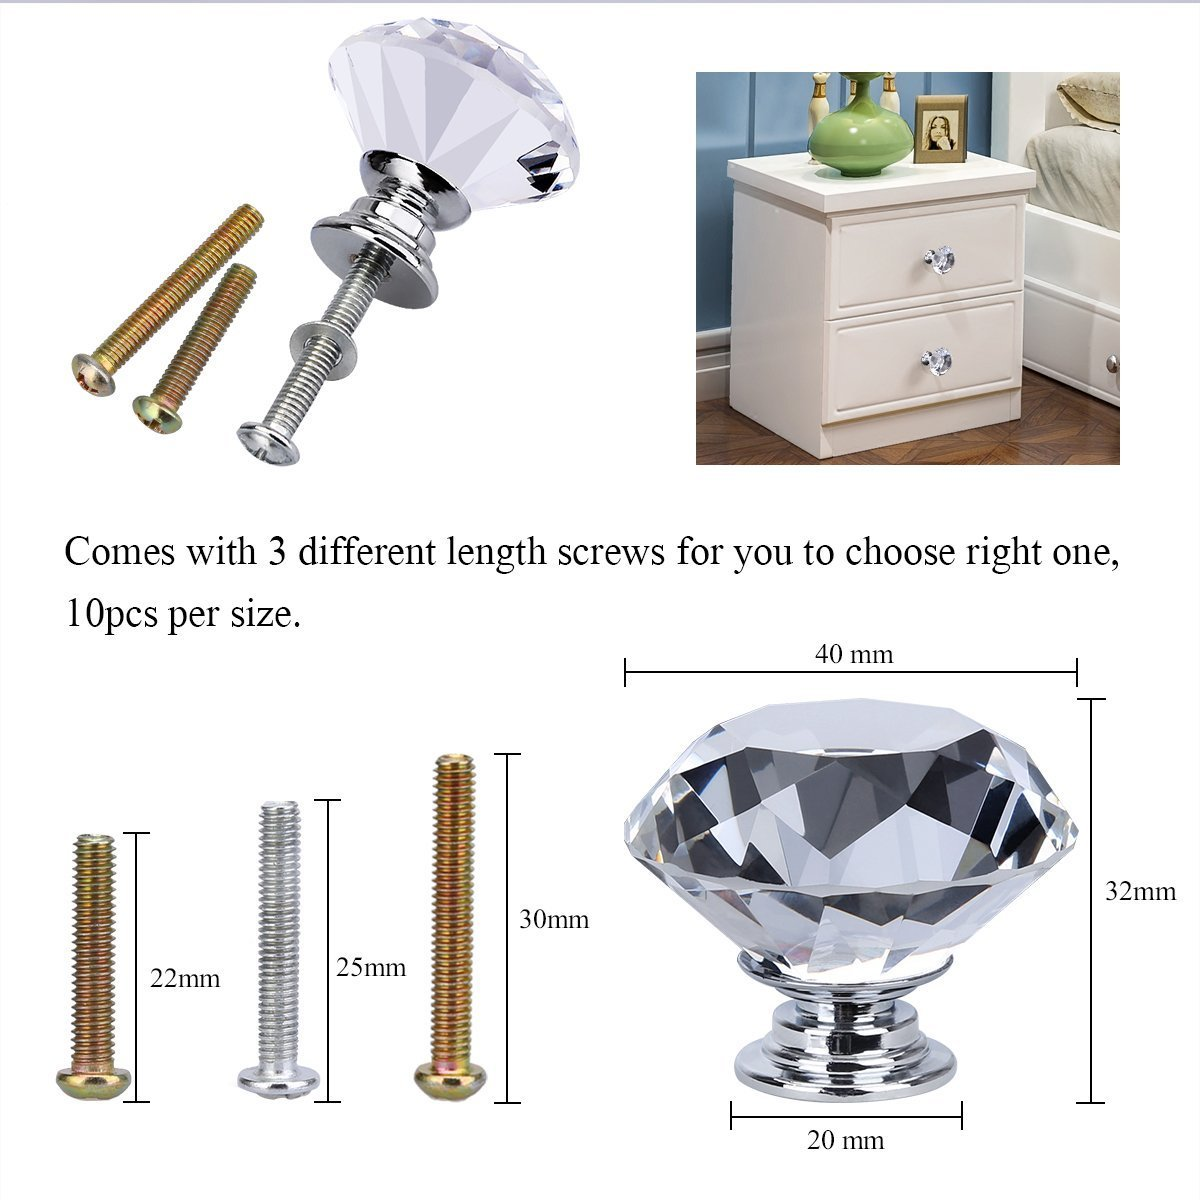 MELODIE DIRECT 10PCS 40MM Diamond Crystal Glass Cabinet Knobs Cupboard Drawer Pull Handle,3 Size Screws by MELODIE DIRECT (Image #3)